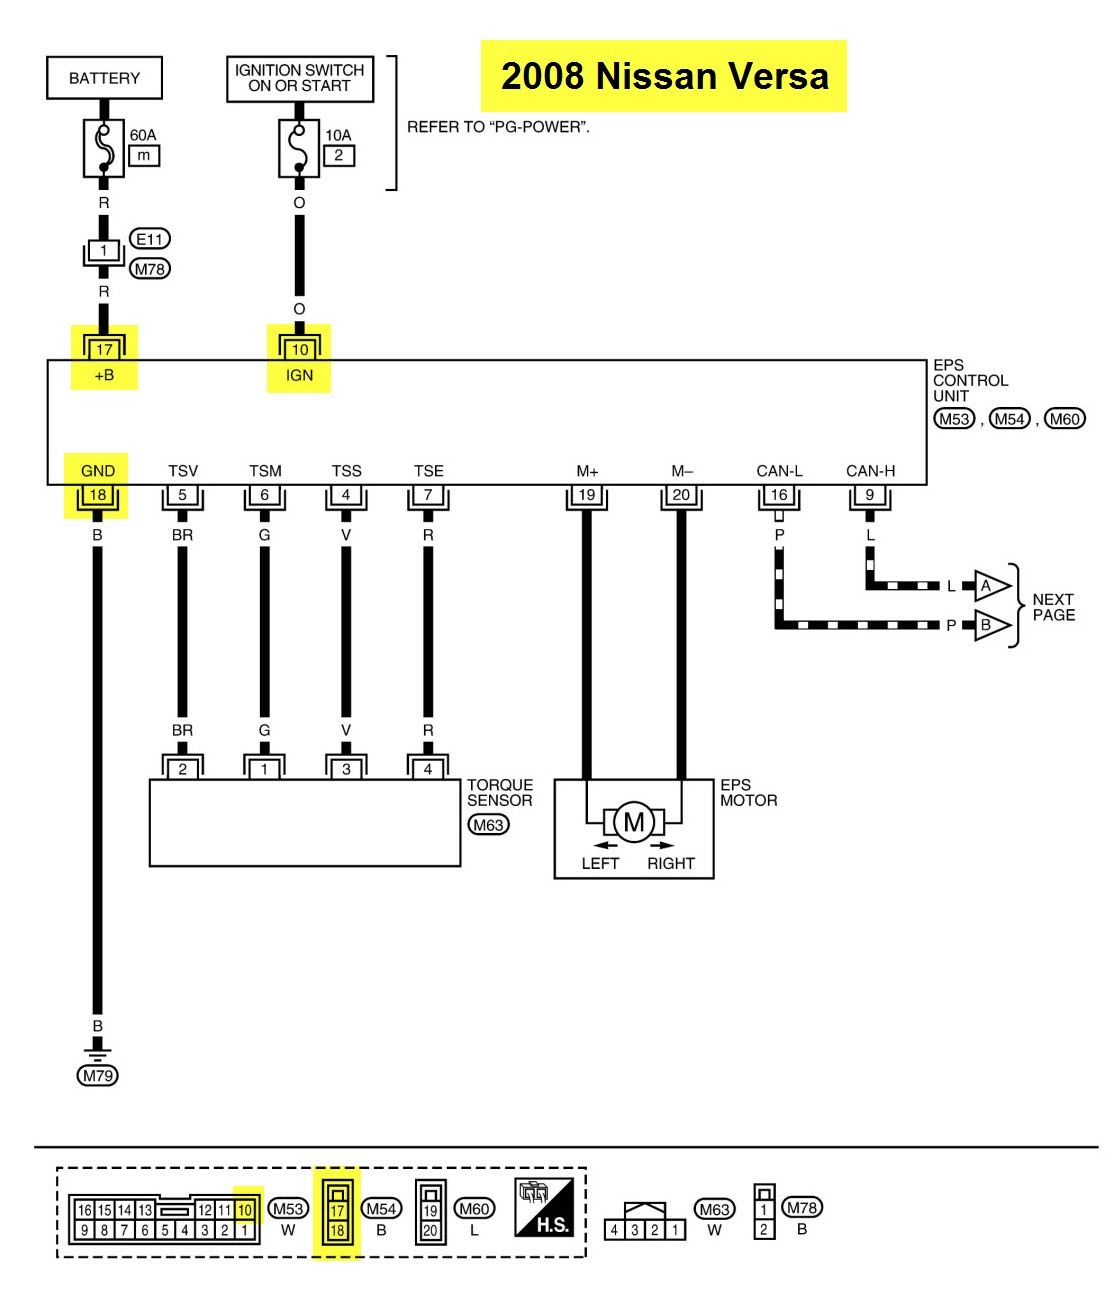 Mustang Diagram 40th 2004 Aniverceryengine Wiring Diagrams Nissan Cube Ecu Library Ford Anniversary Edition